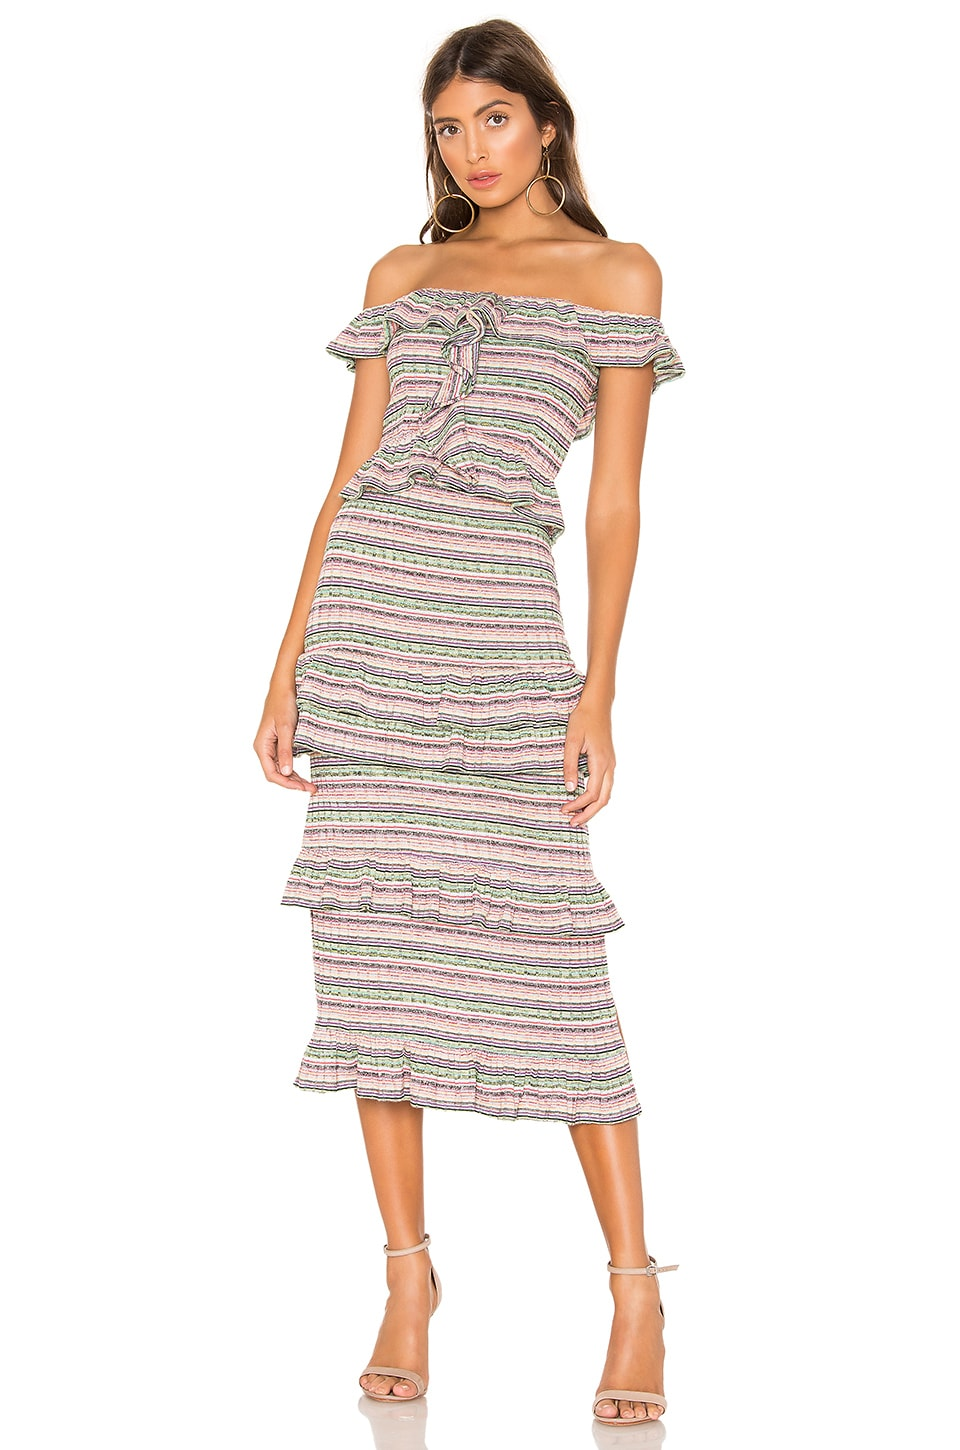 Tularosa Lily Dress in Sage Multi Stripe